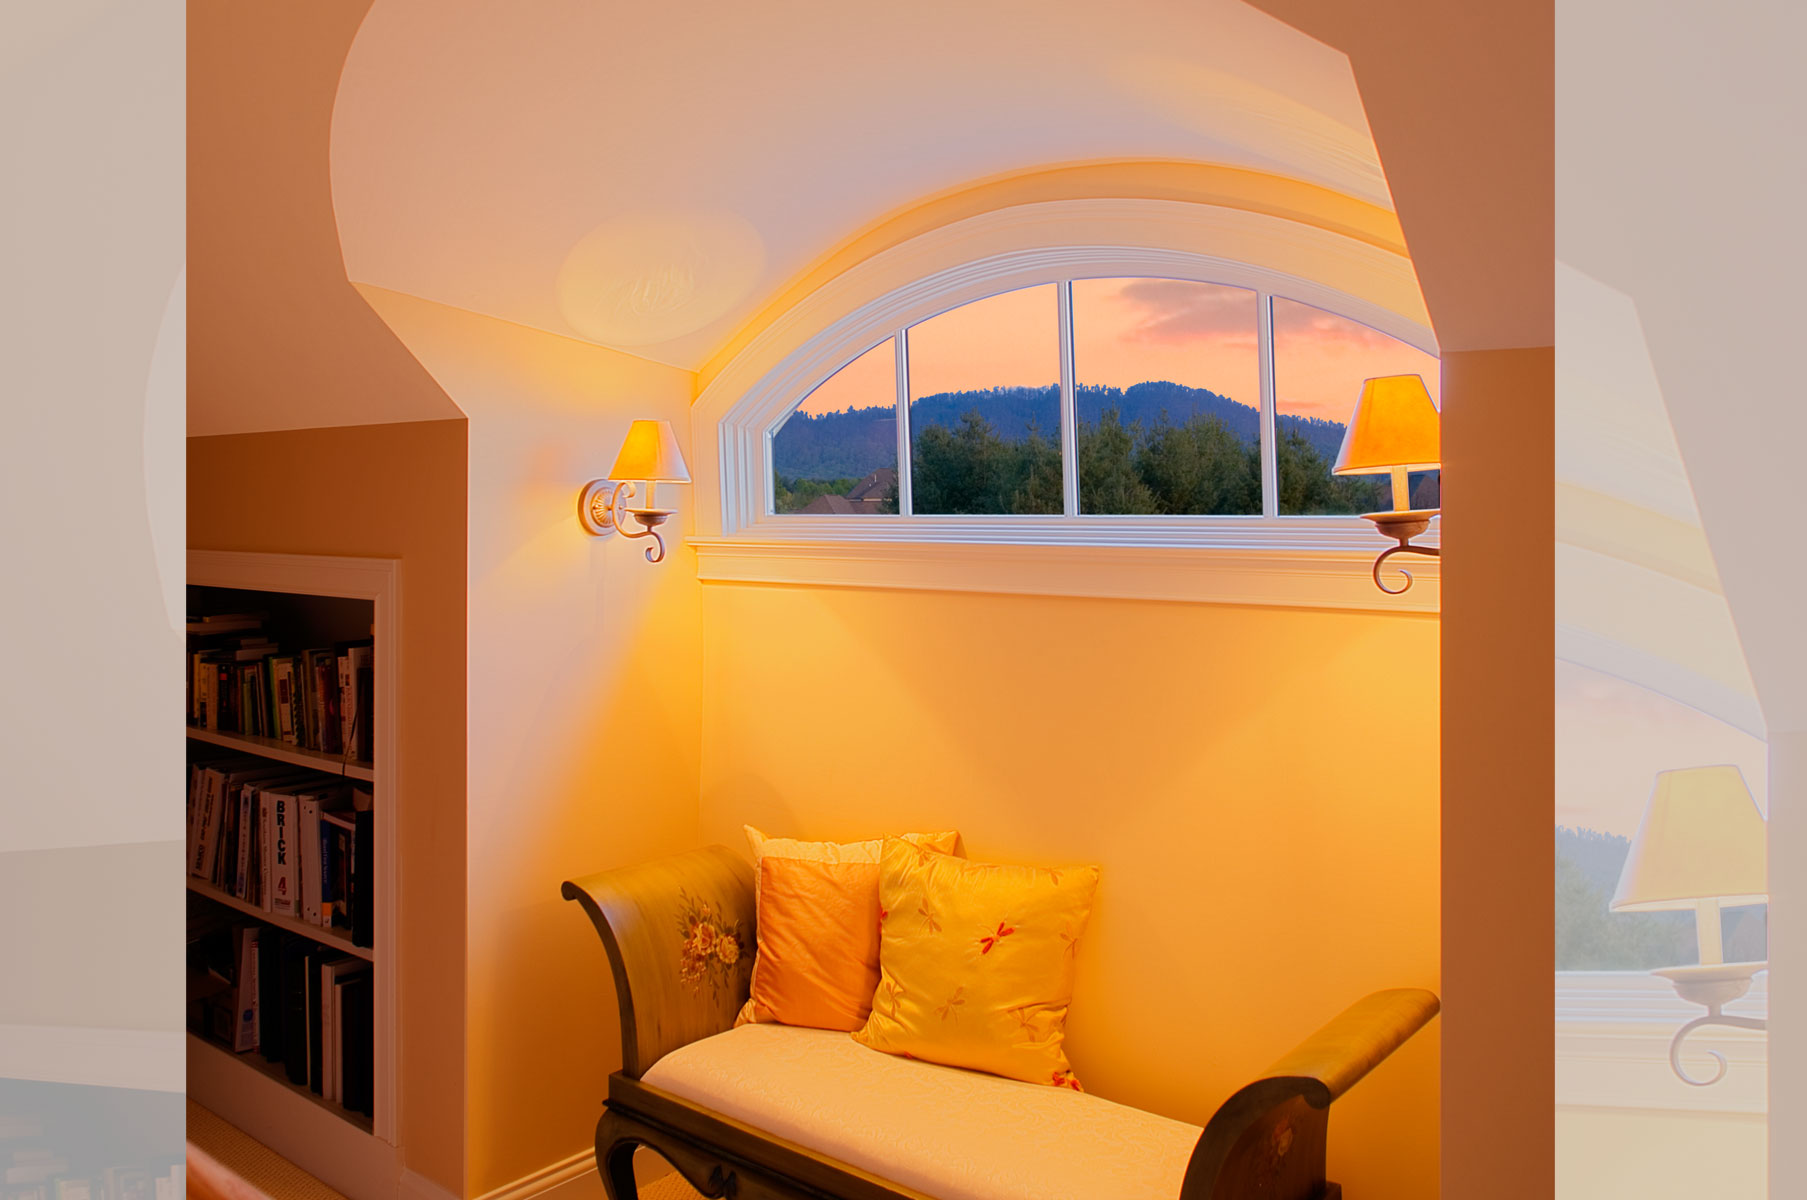 Eyebrow Dormer Window at the English Cottage in Arden, NC